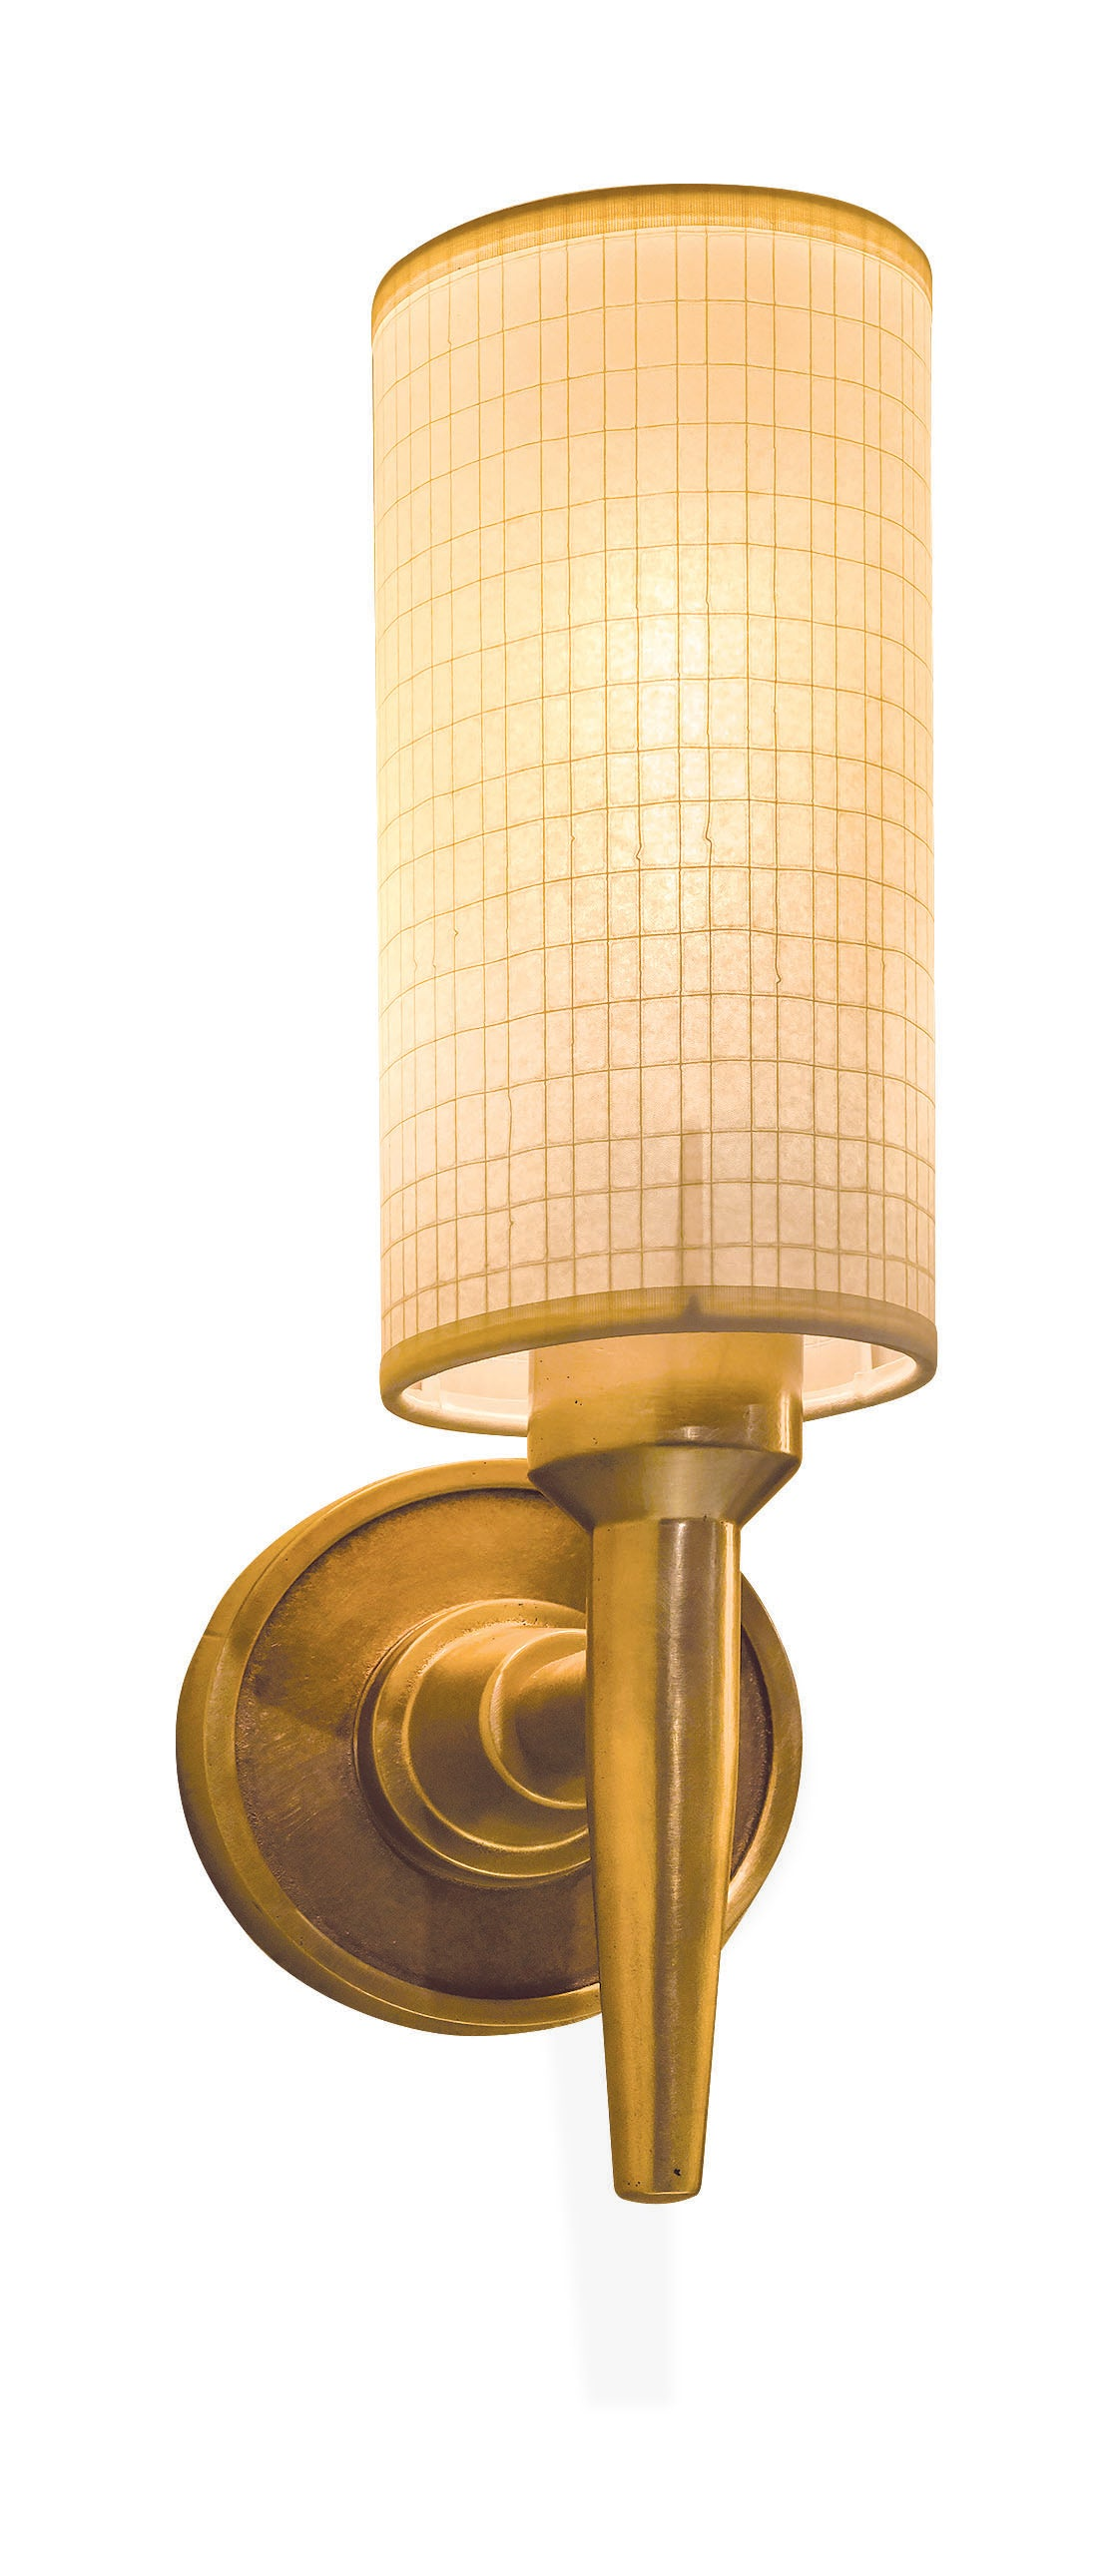 "Sun Valley Bronze SVB-LSC-1050  Olson Wall Sconce  4"" x 4"" x 9"" Rolled edge shade"